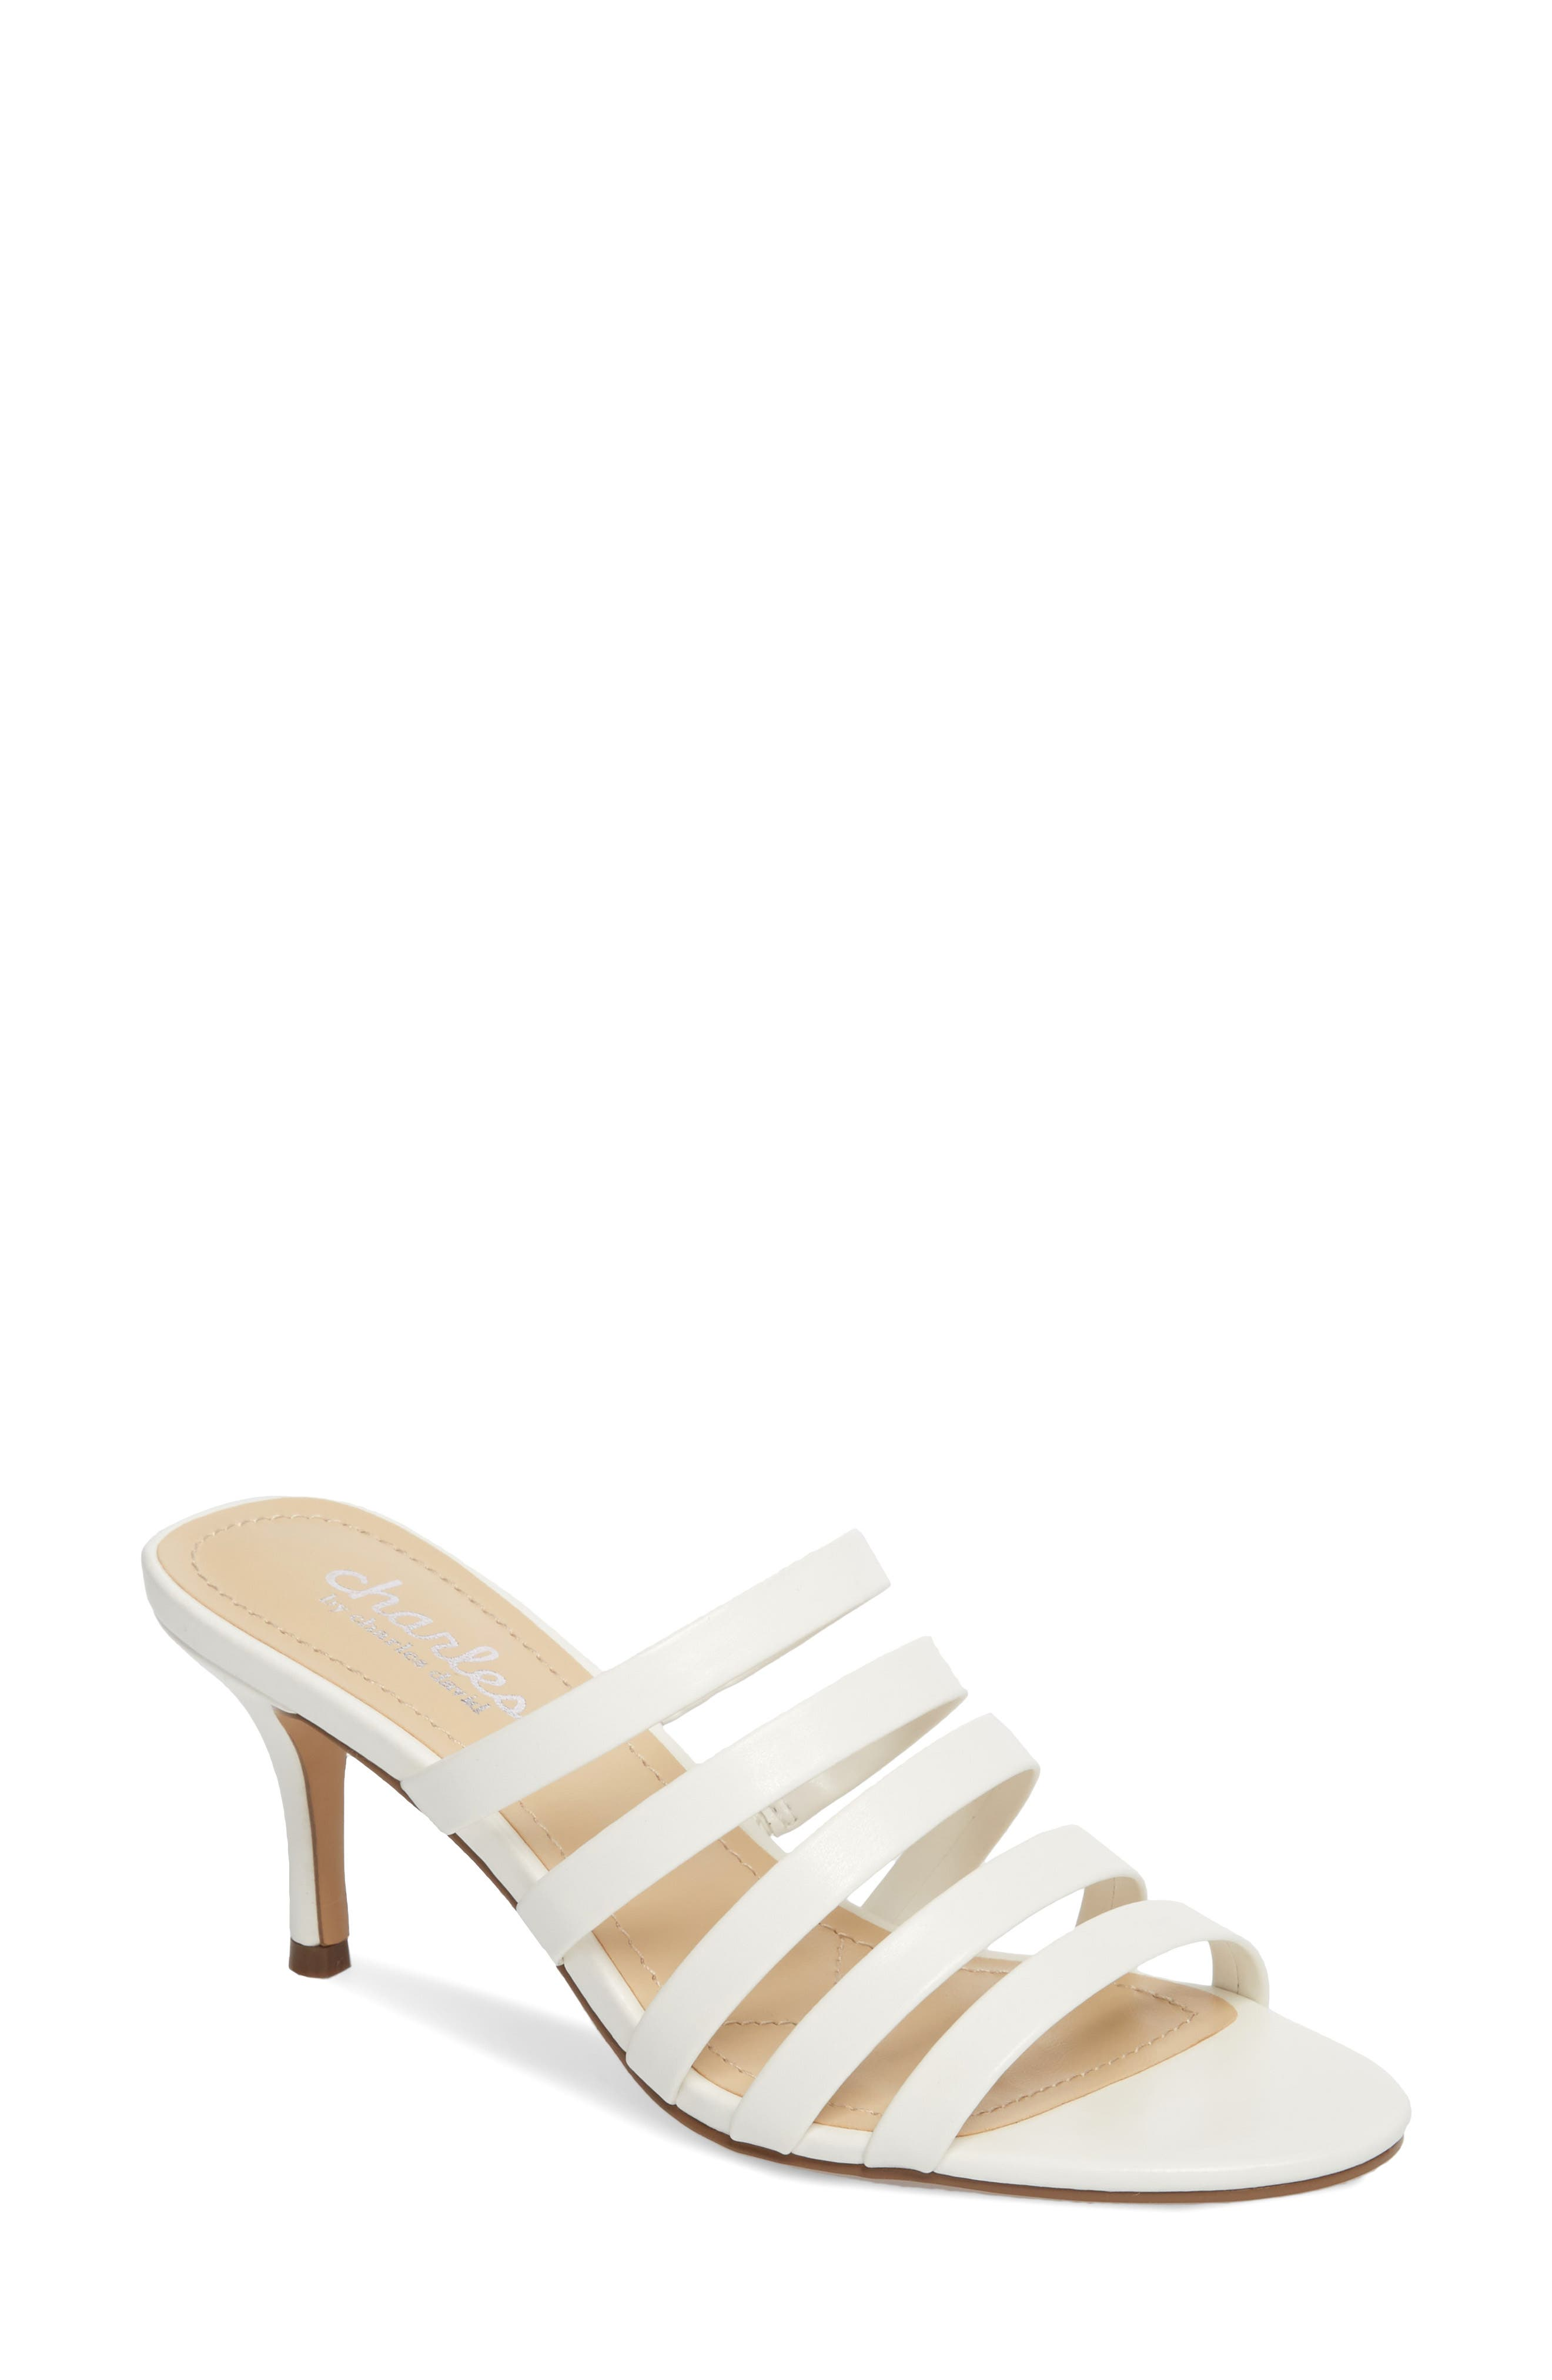 Charles by Charles David Benny Sandal (Women)